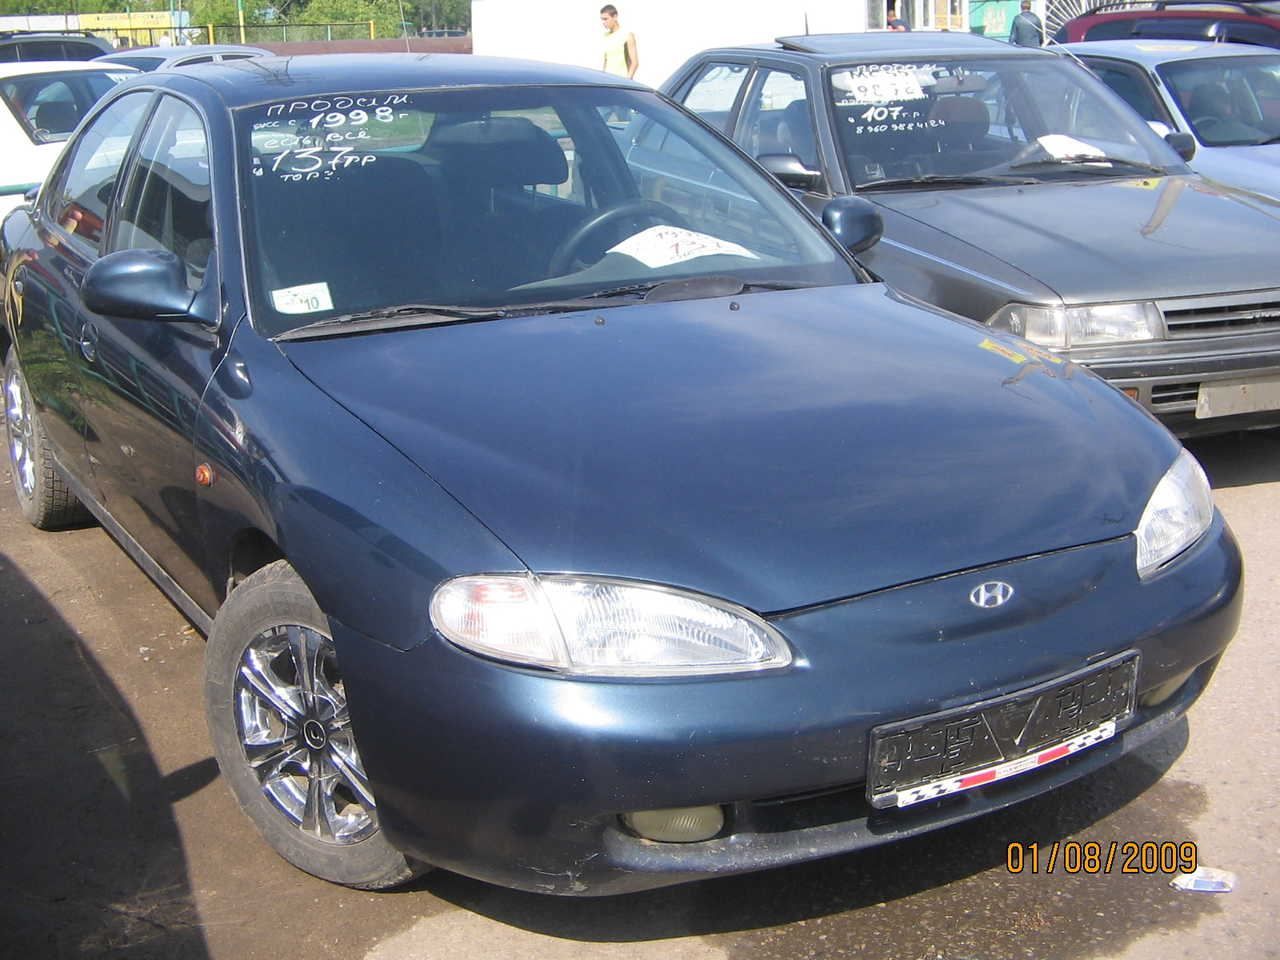 Hyundai Elantra 2.0 1998 photo - 1